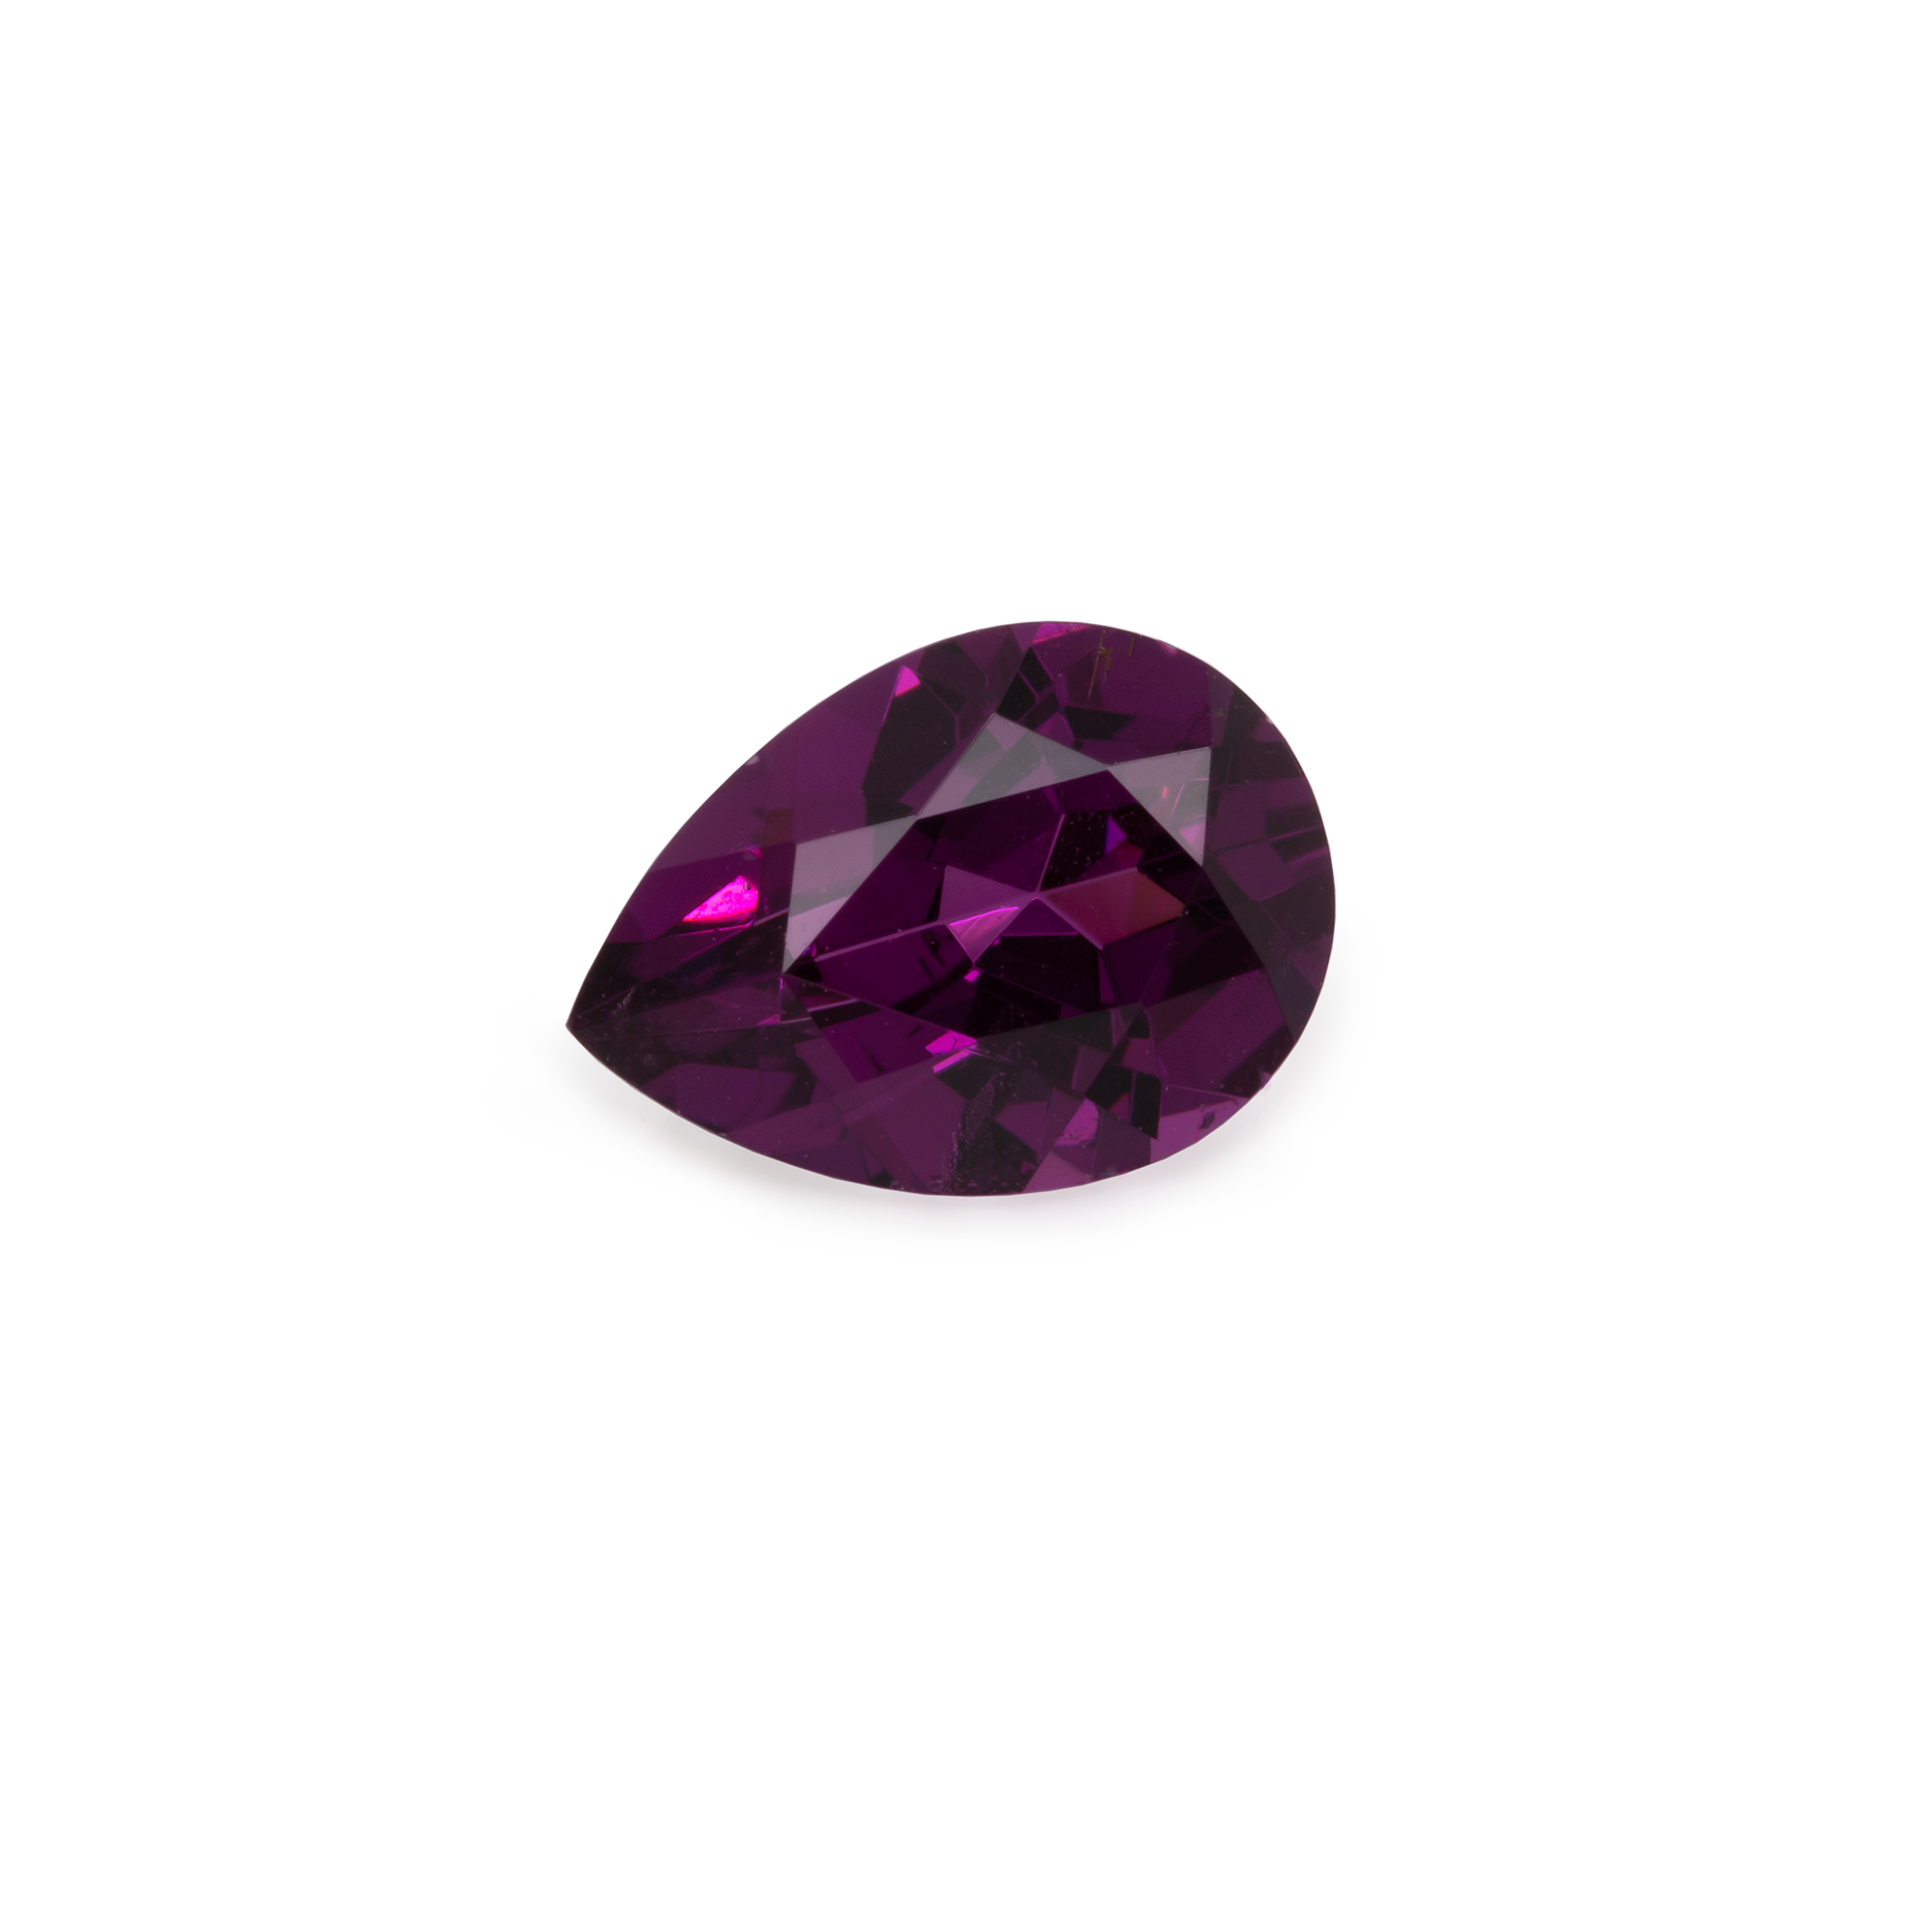 Royal Purple Garnet - lila, birnform, 7x5 mm, 0,68-0,87 cts, Nr. RP22001